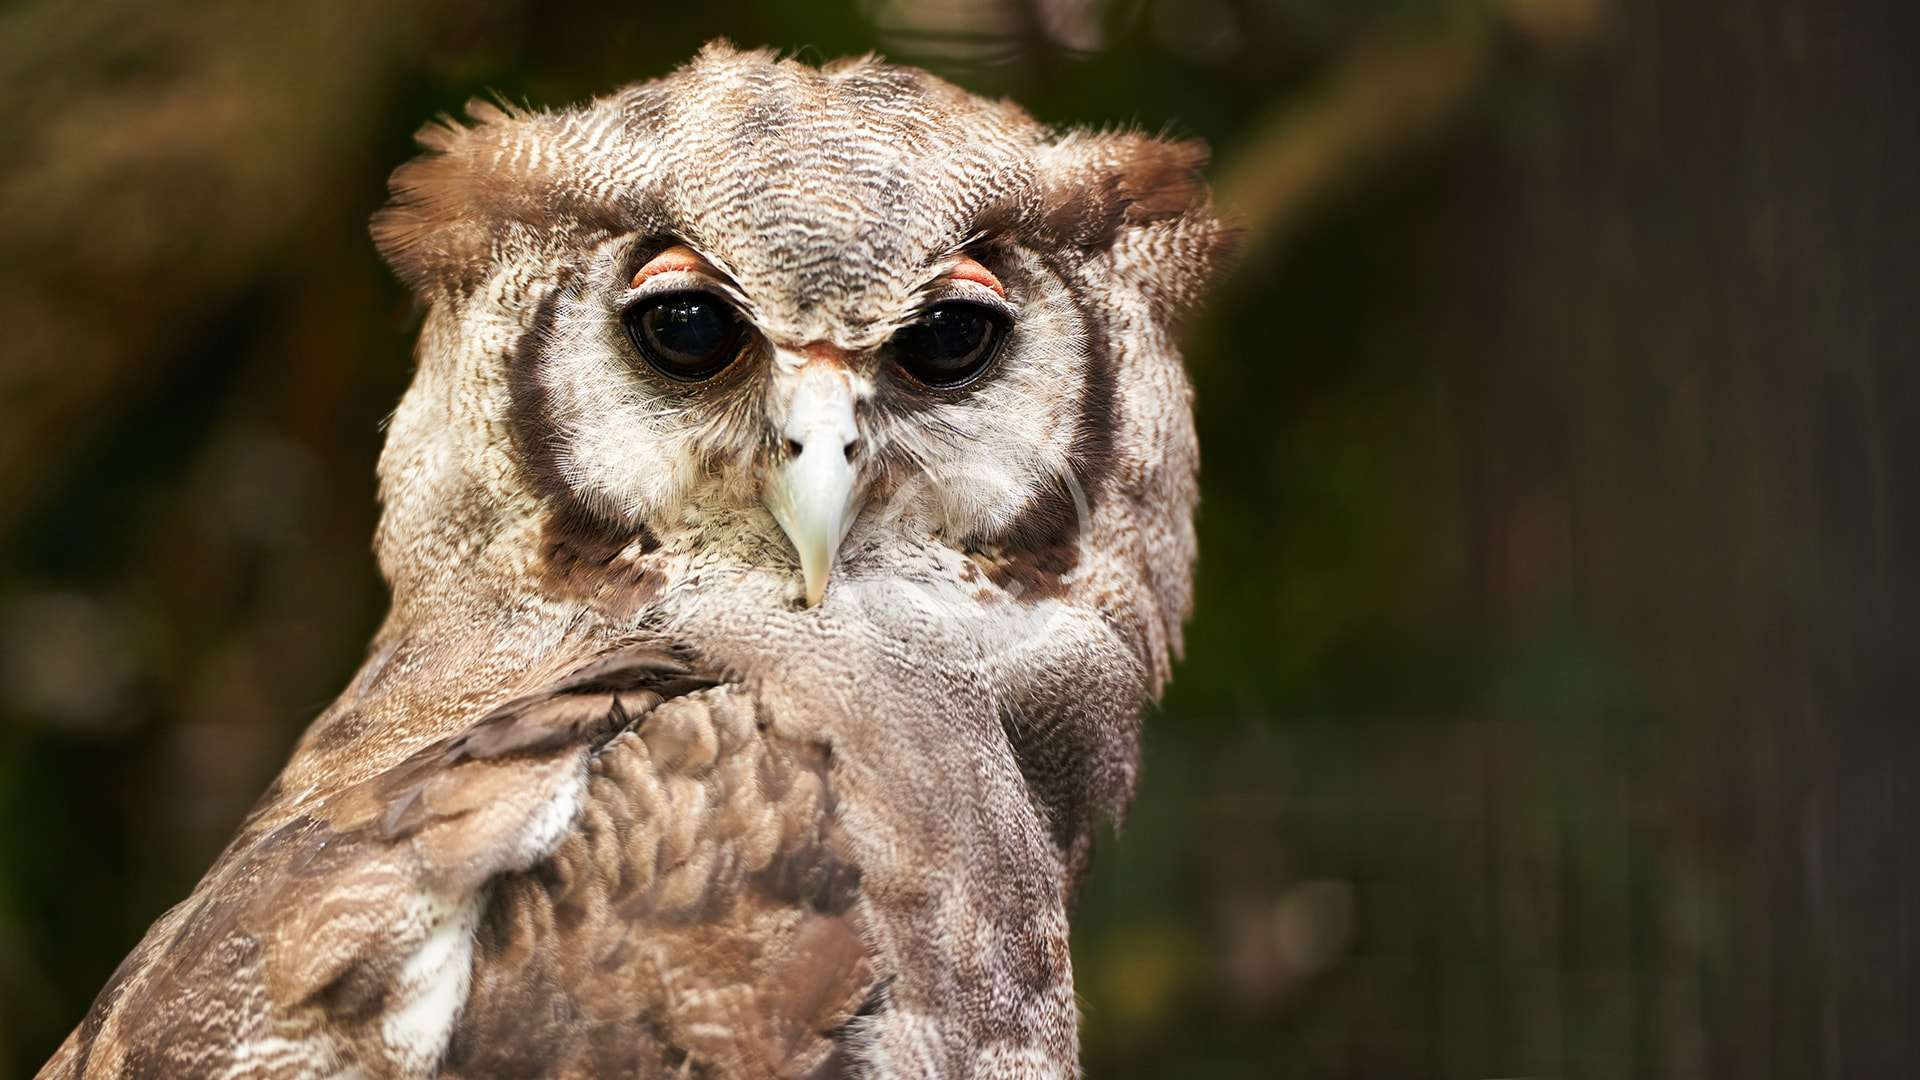 Donate to Support Owls